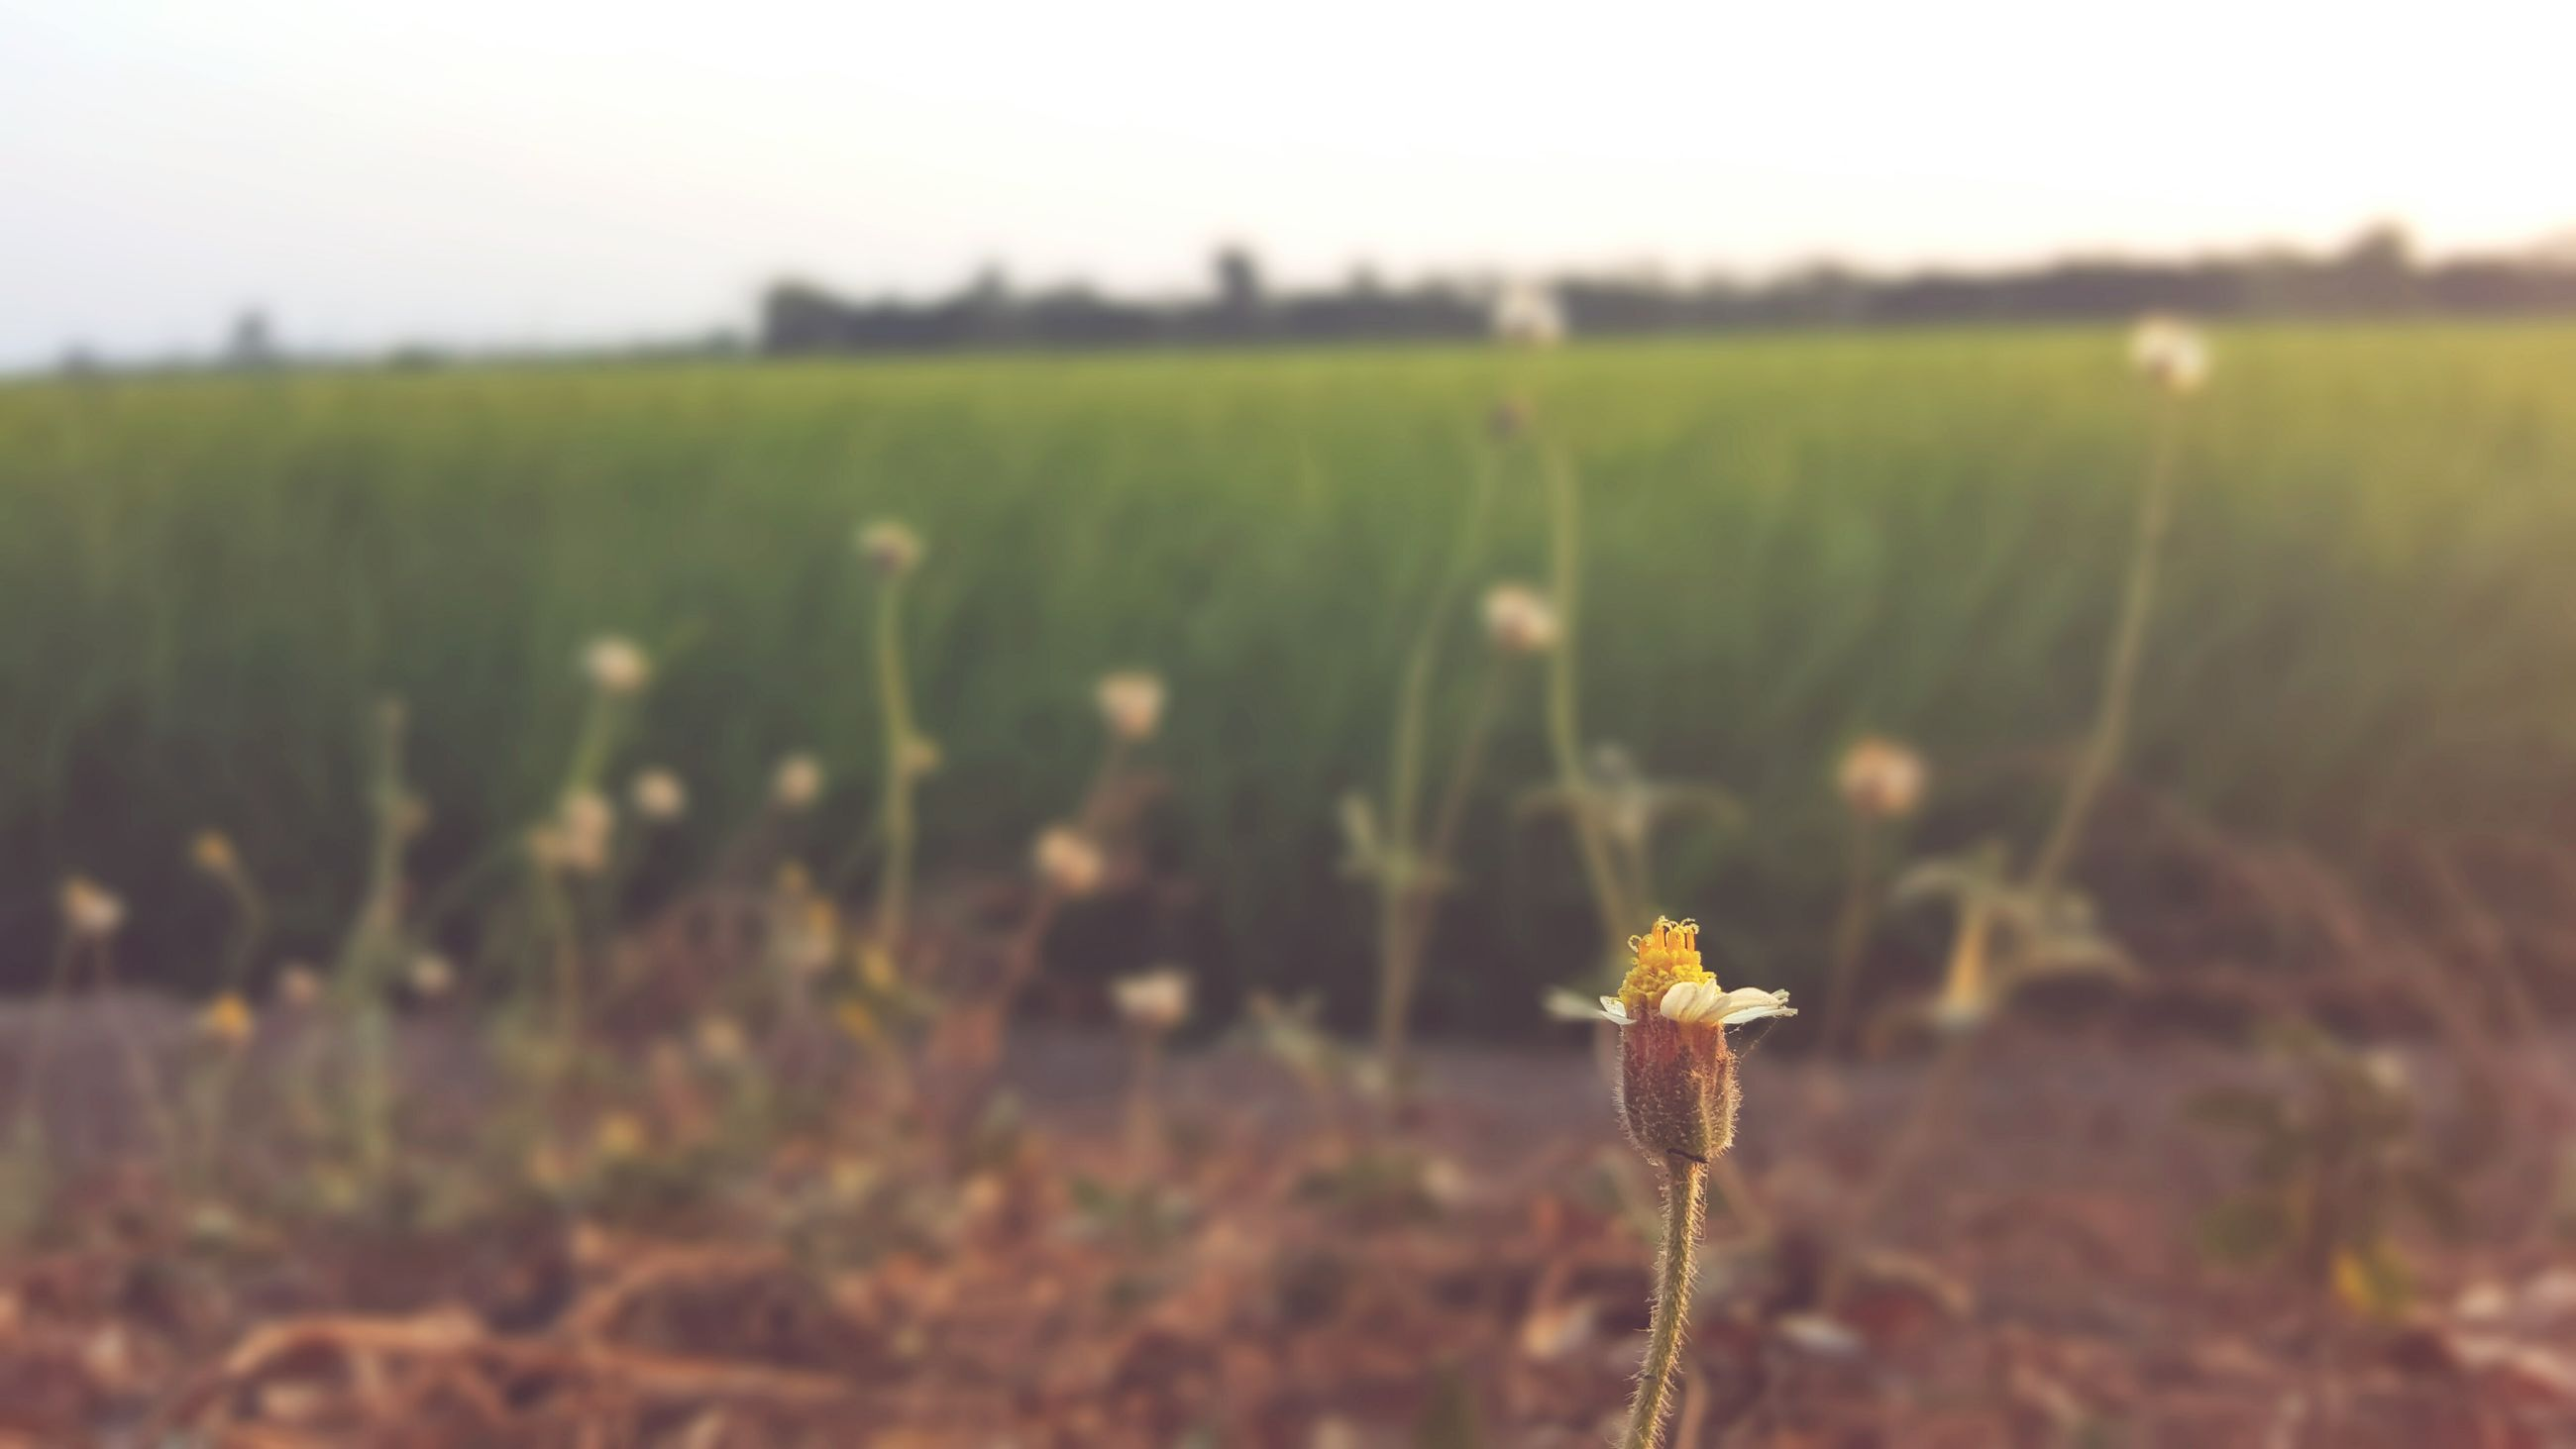 animal themes, focus on foreground, animals in the wild, field, wildlife, one animal, grass, selective focus, insect, nature, landscape, close-up, beauty in nature, plant, growth, tranquility, outdoors, day, tranquil scene, no people